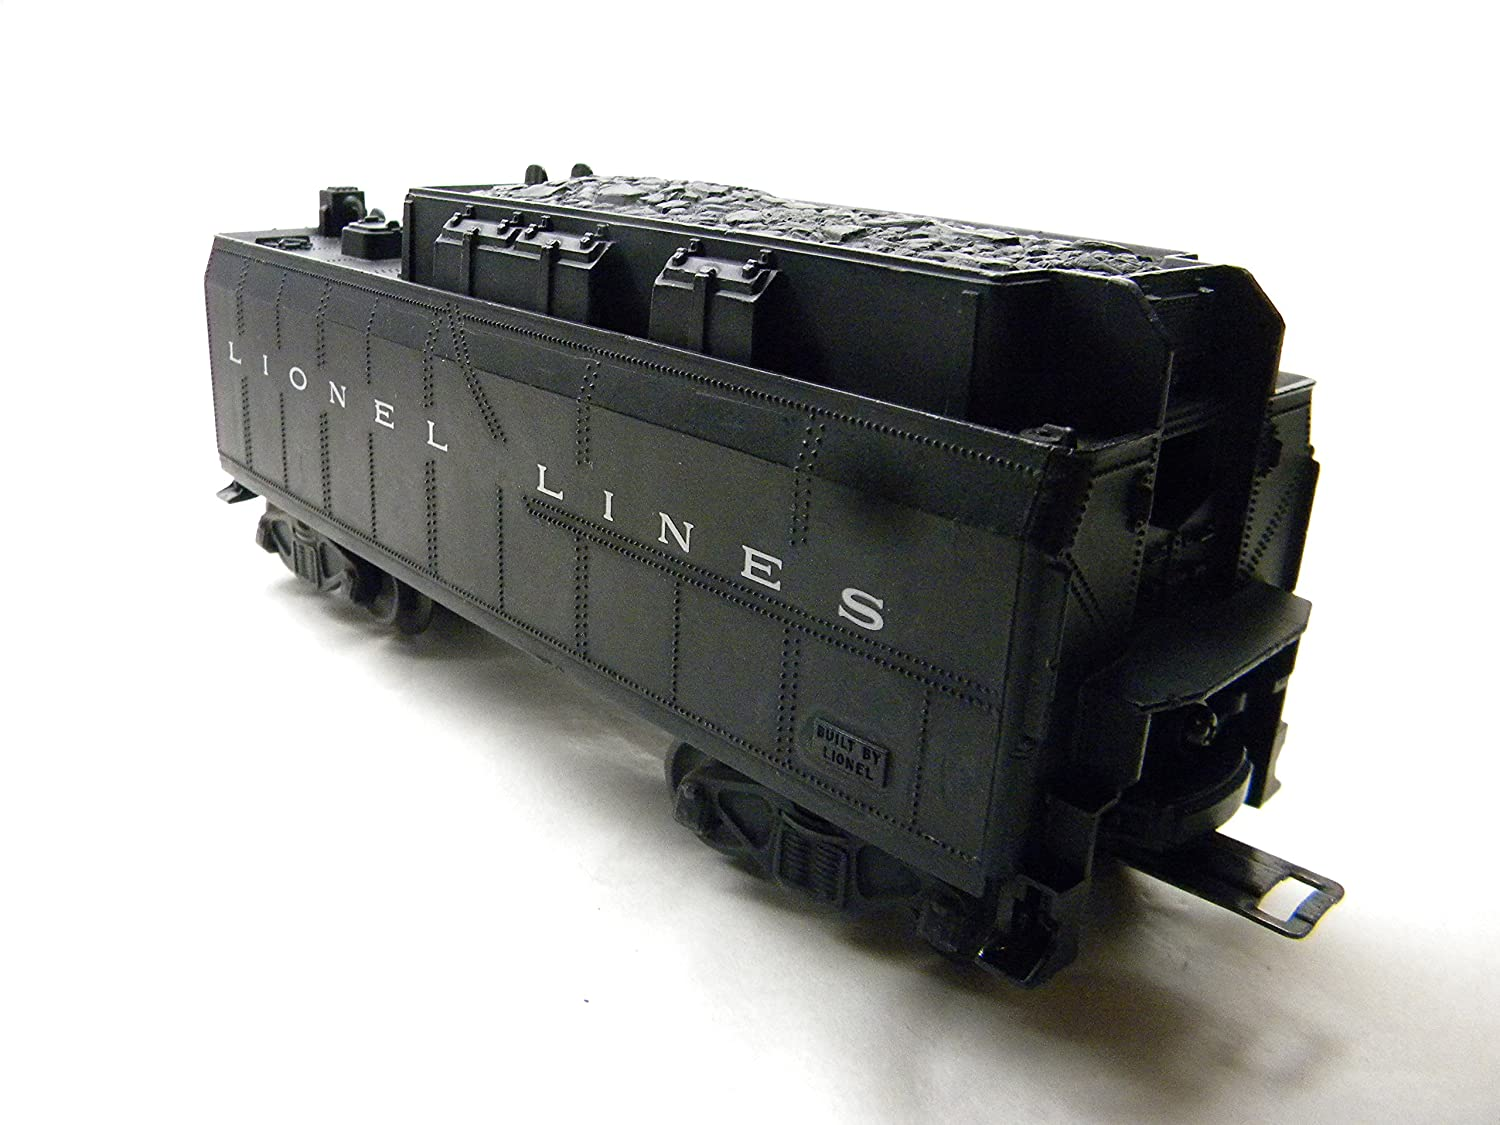 Lionel Whistle Wiring Diagrams | Wiring Liry on wiring lionel track, wiring lionel layout, wiring lionel accessories,